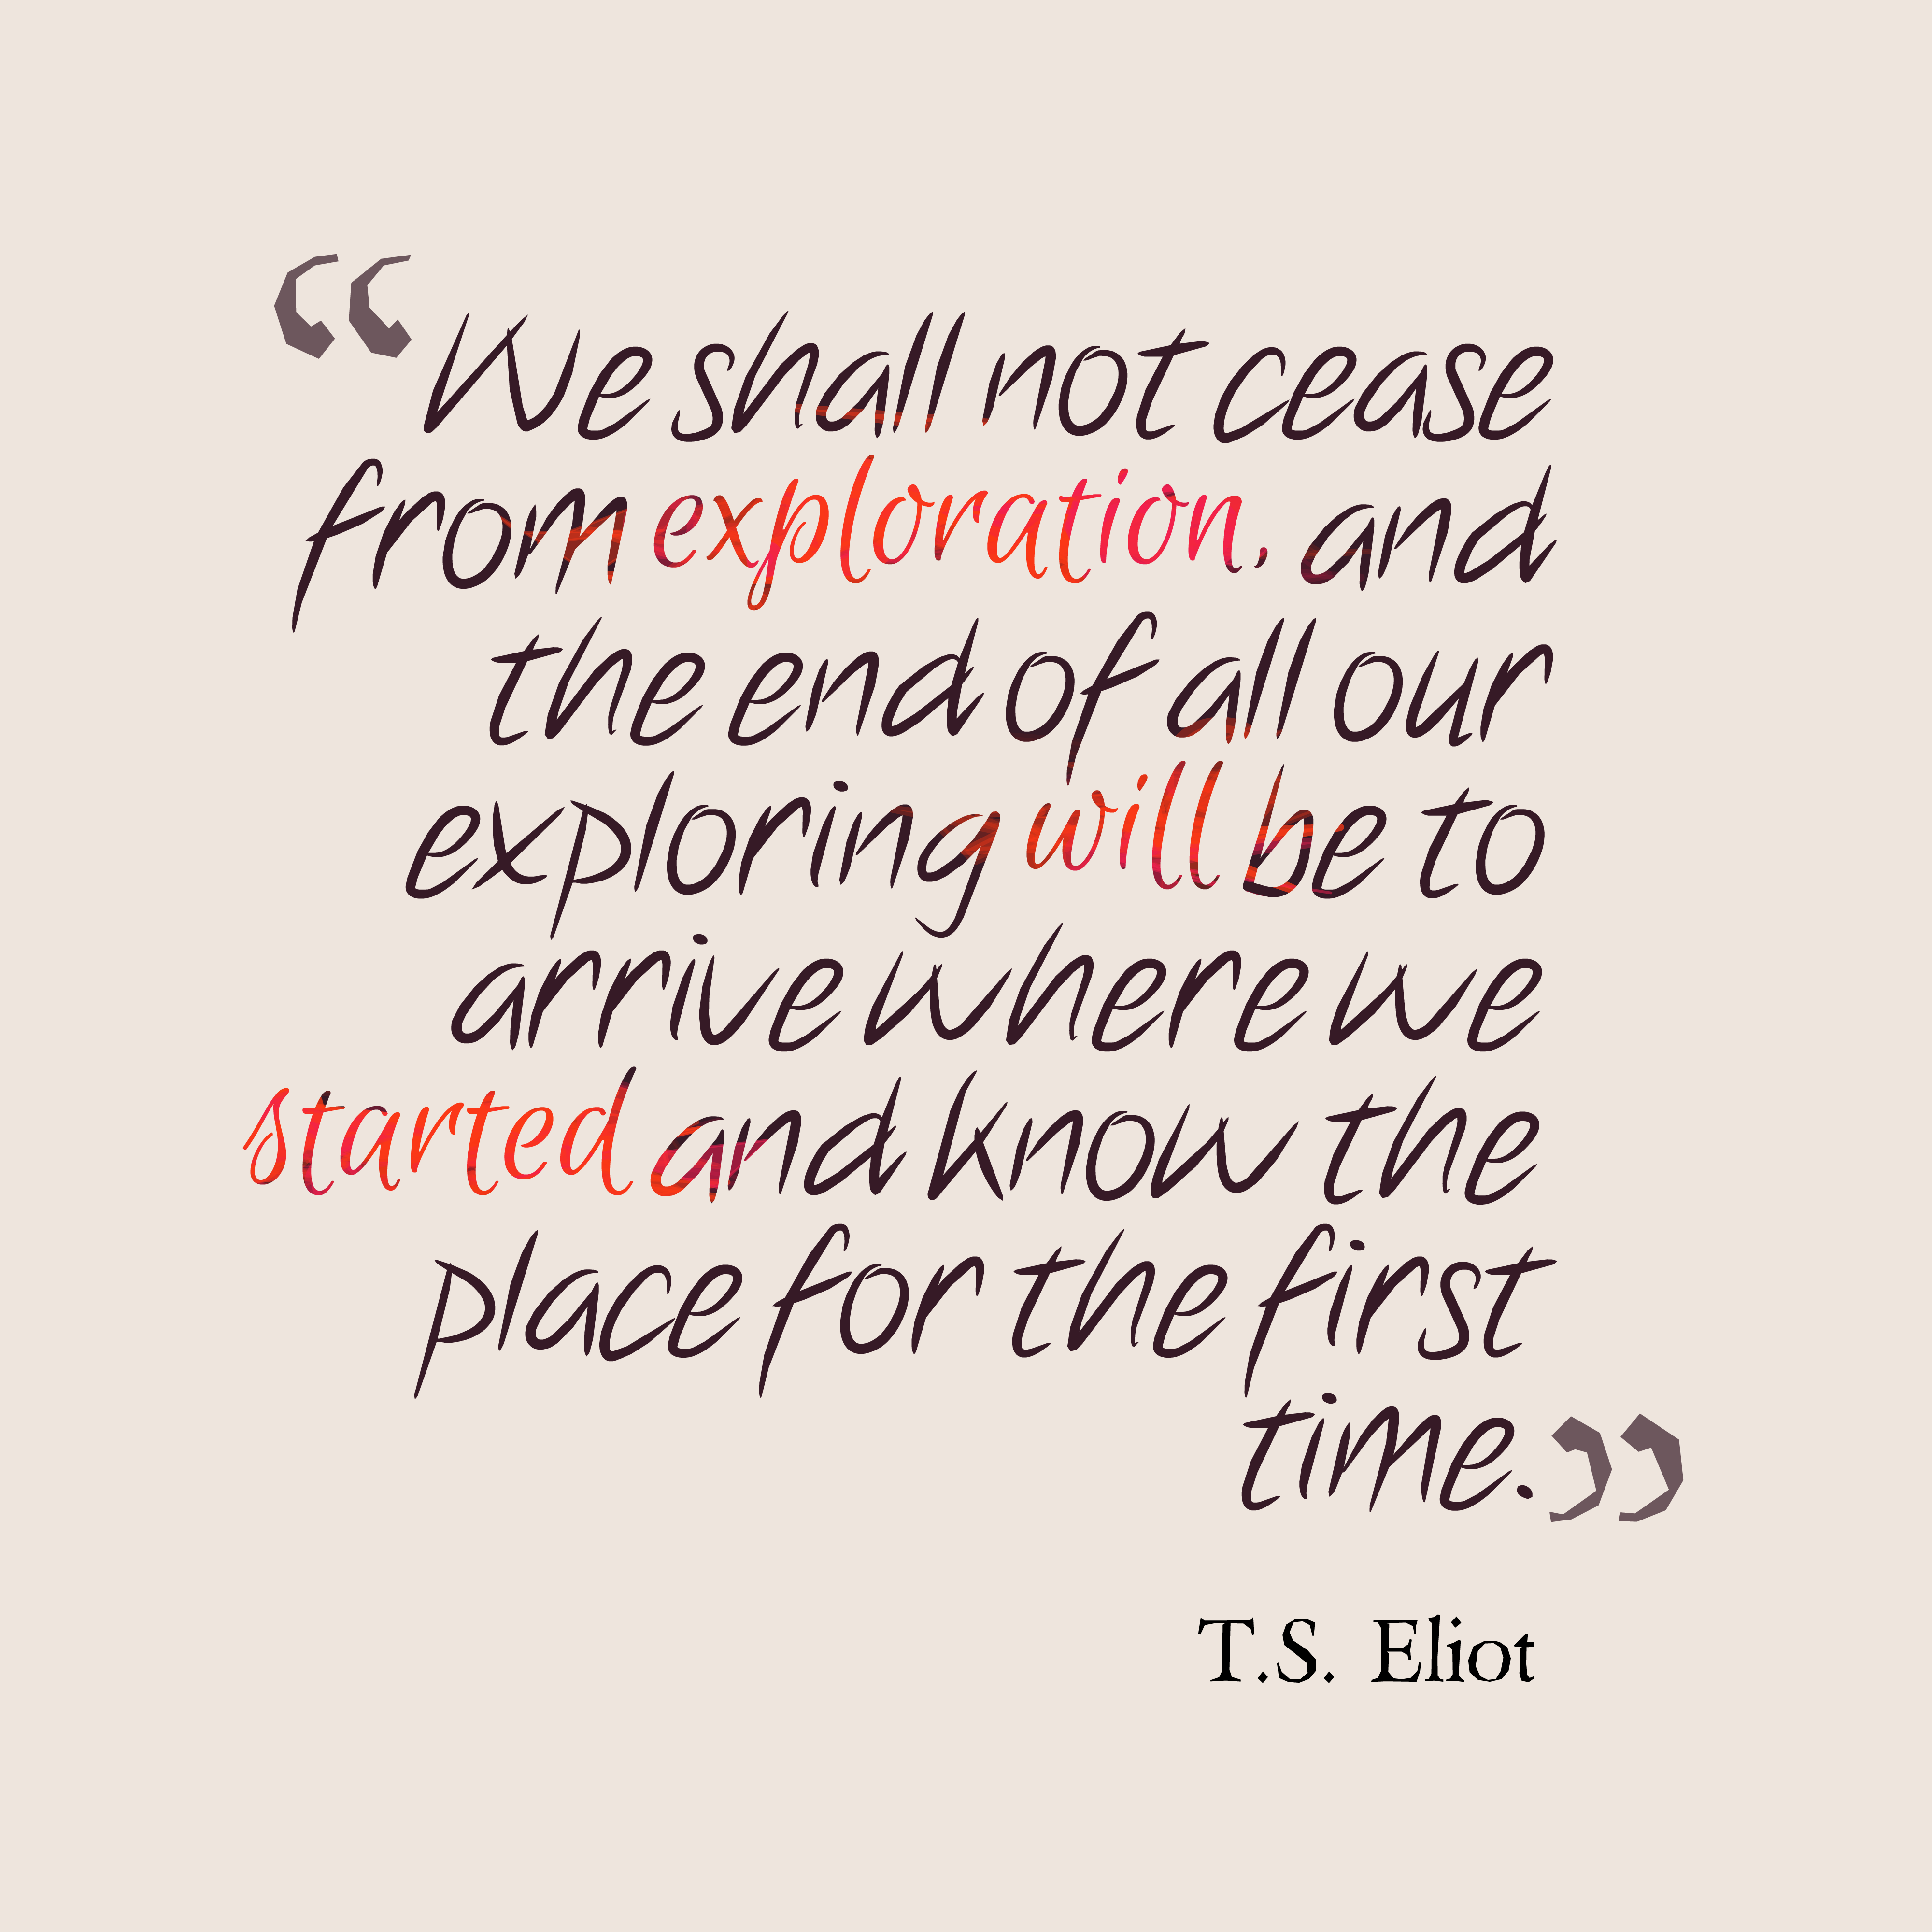 Quotes image of We shall not cease from exploration, and the end of all our exploring will be to arrive where we started and know the place for the first time.